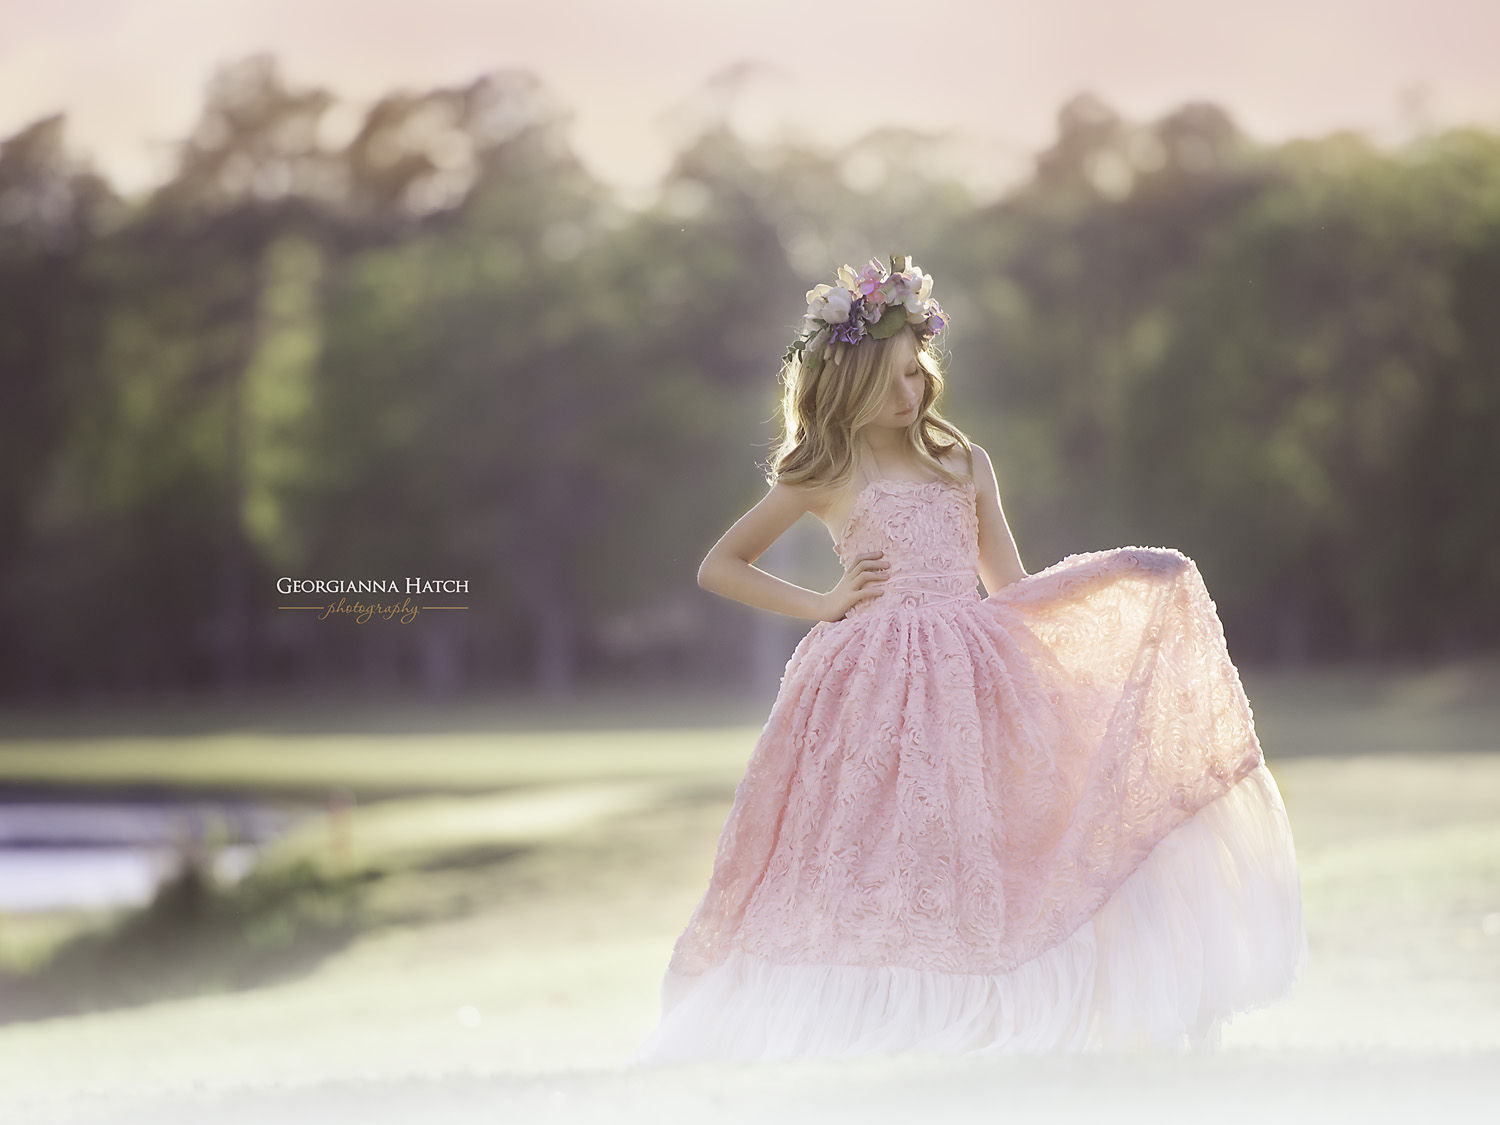 Beautiful Tallahassee! - We can design unique and beautiful sessions with complete styling including couture gowns for girls. Contact us for details!